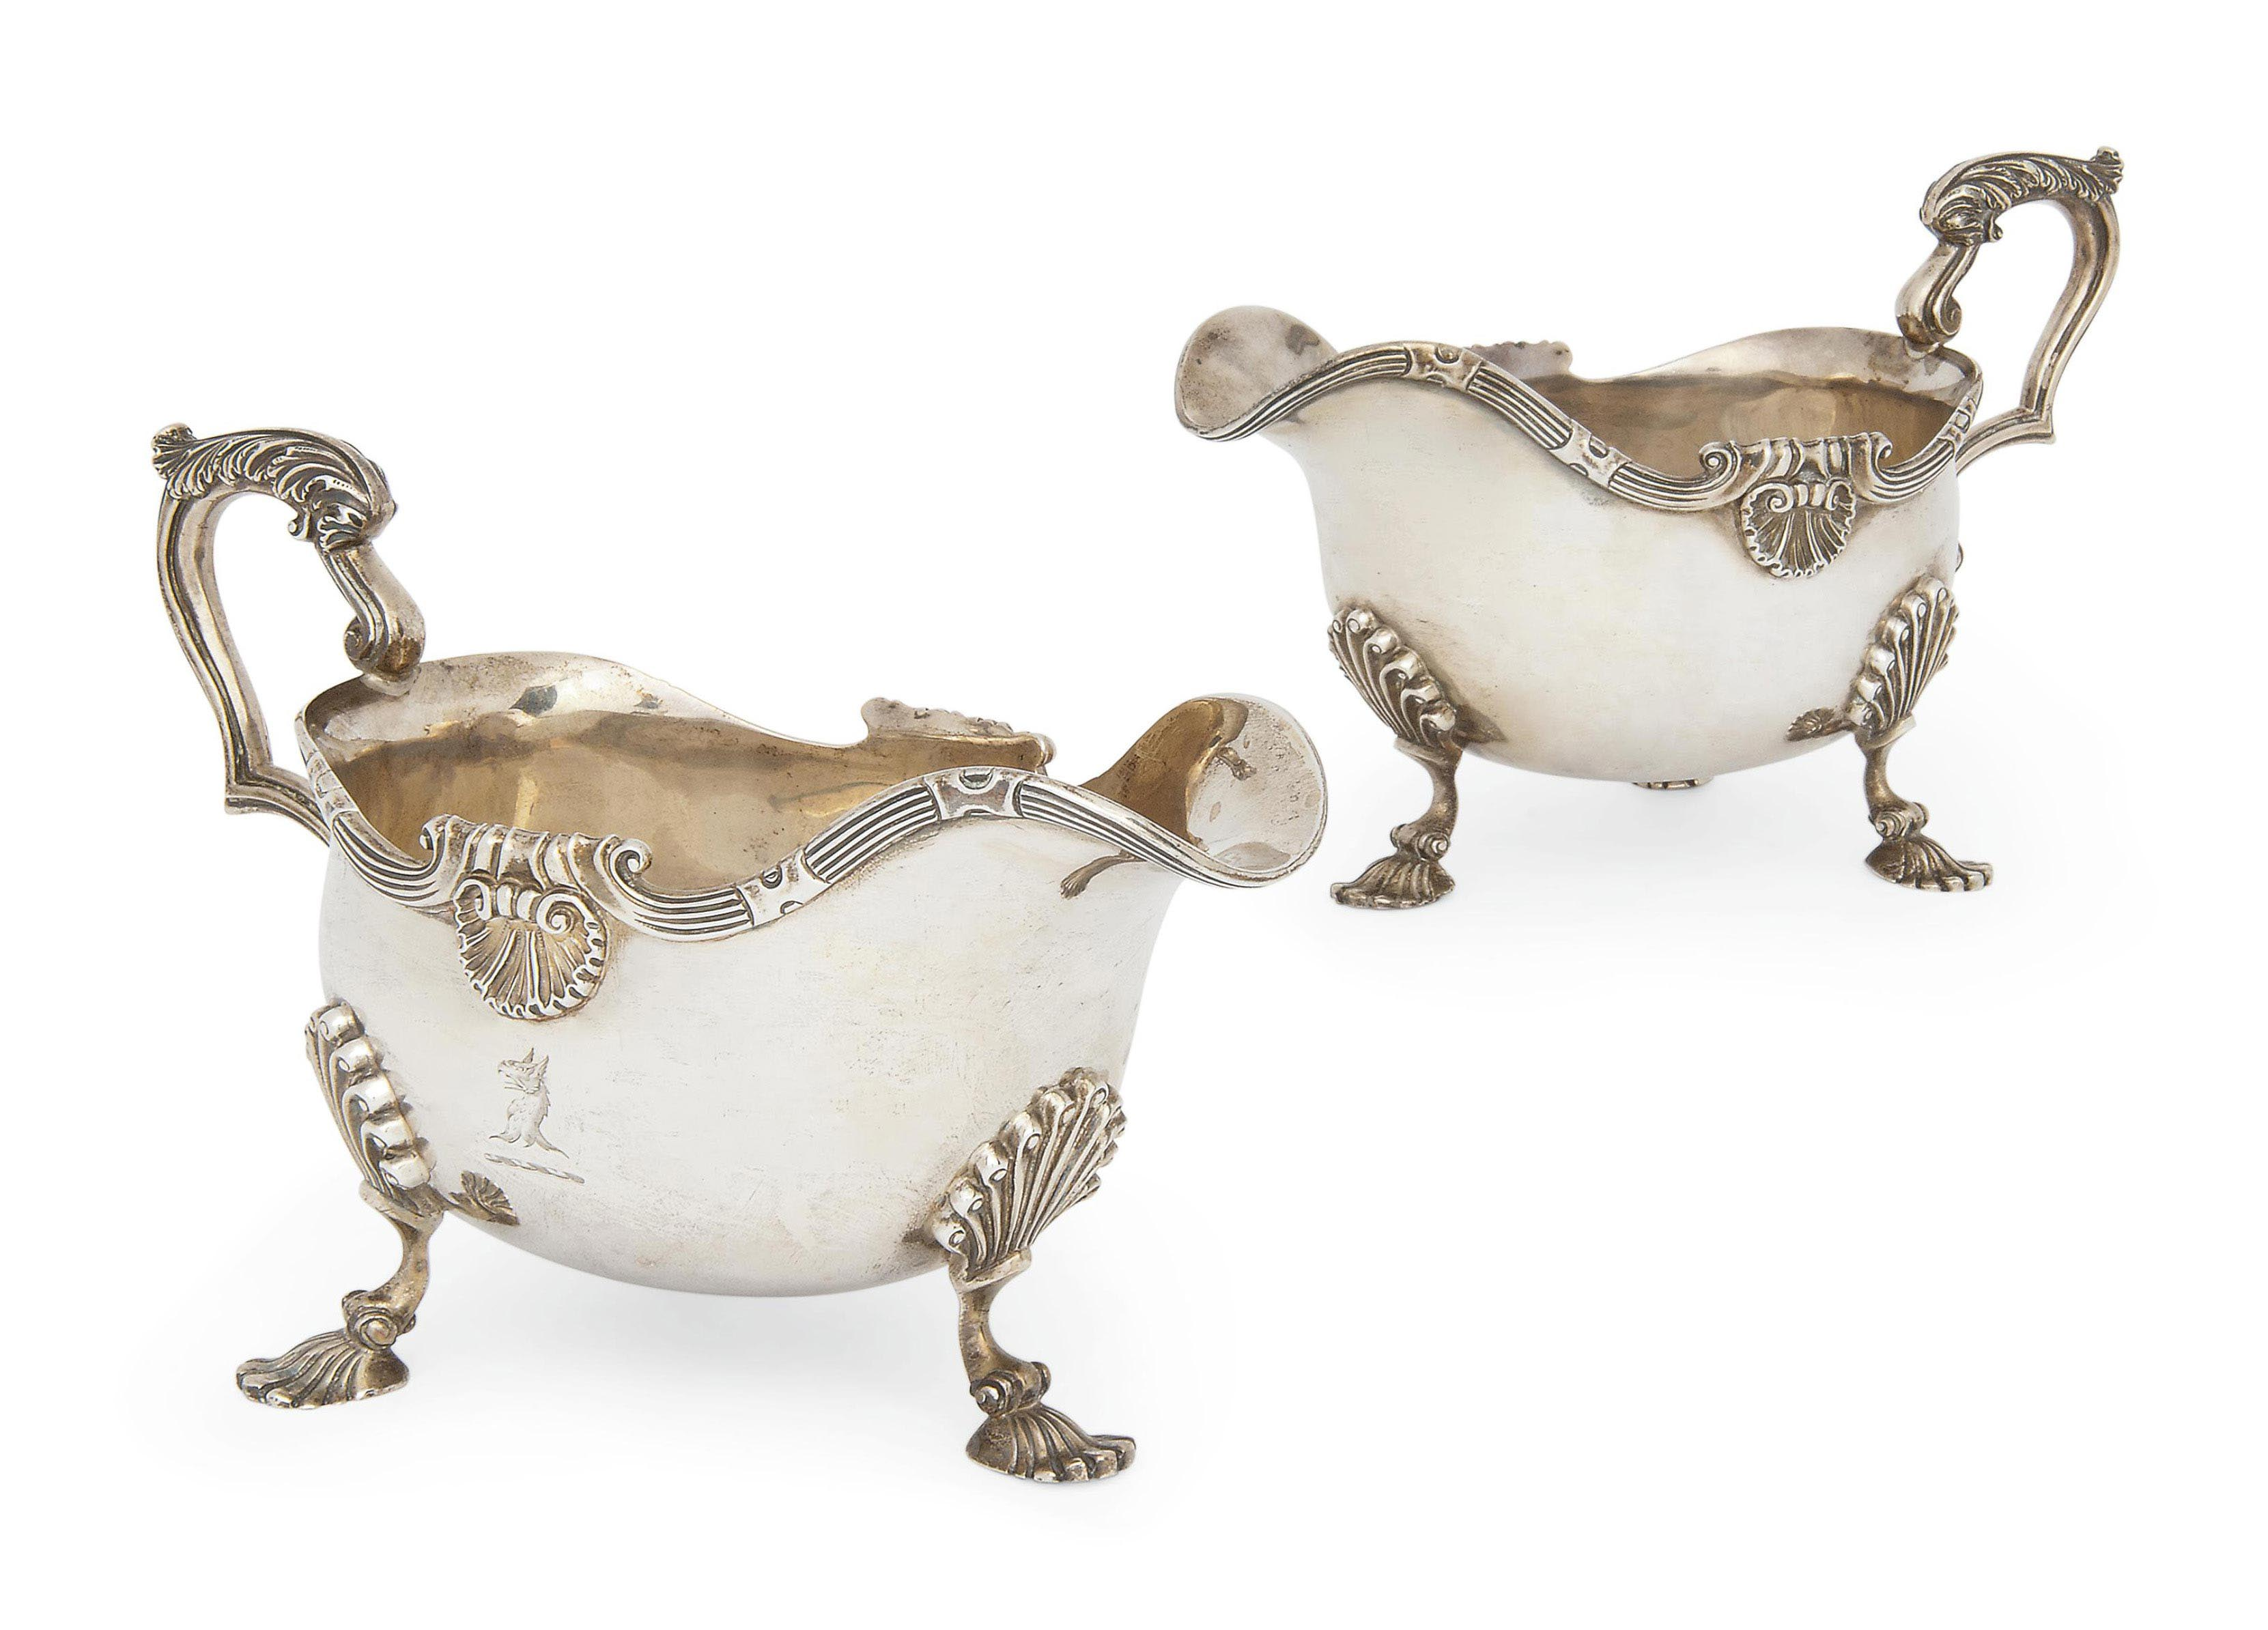 A PAIR OF EDWARDIAN SILVER SAUCEBOATS OF GEORGE II STYLE